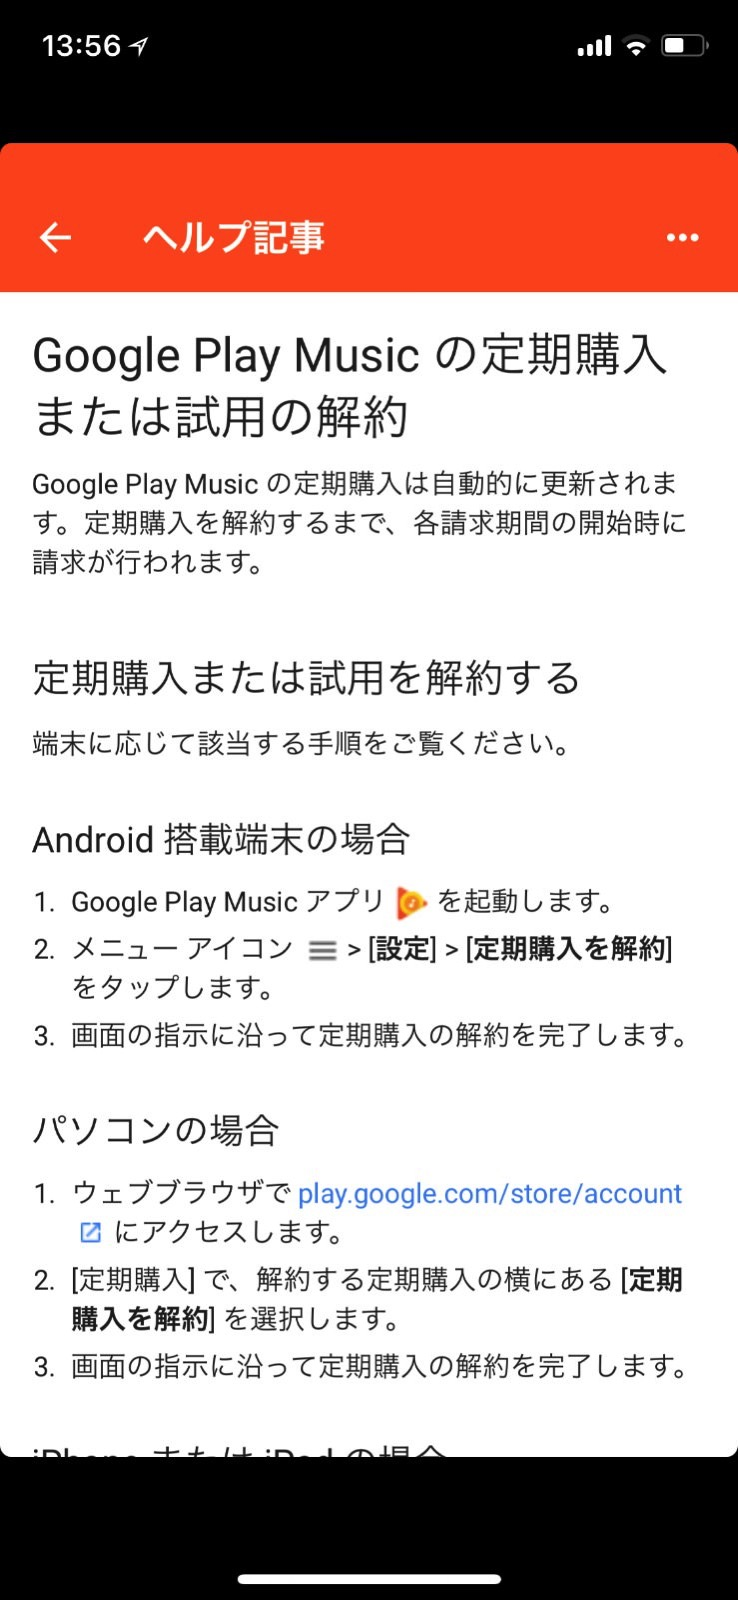 Google play music unsubscribe 23